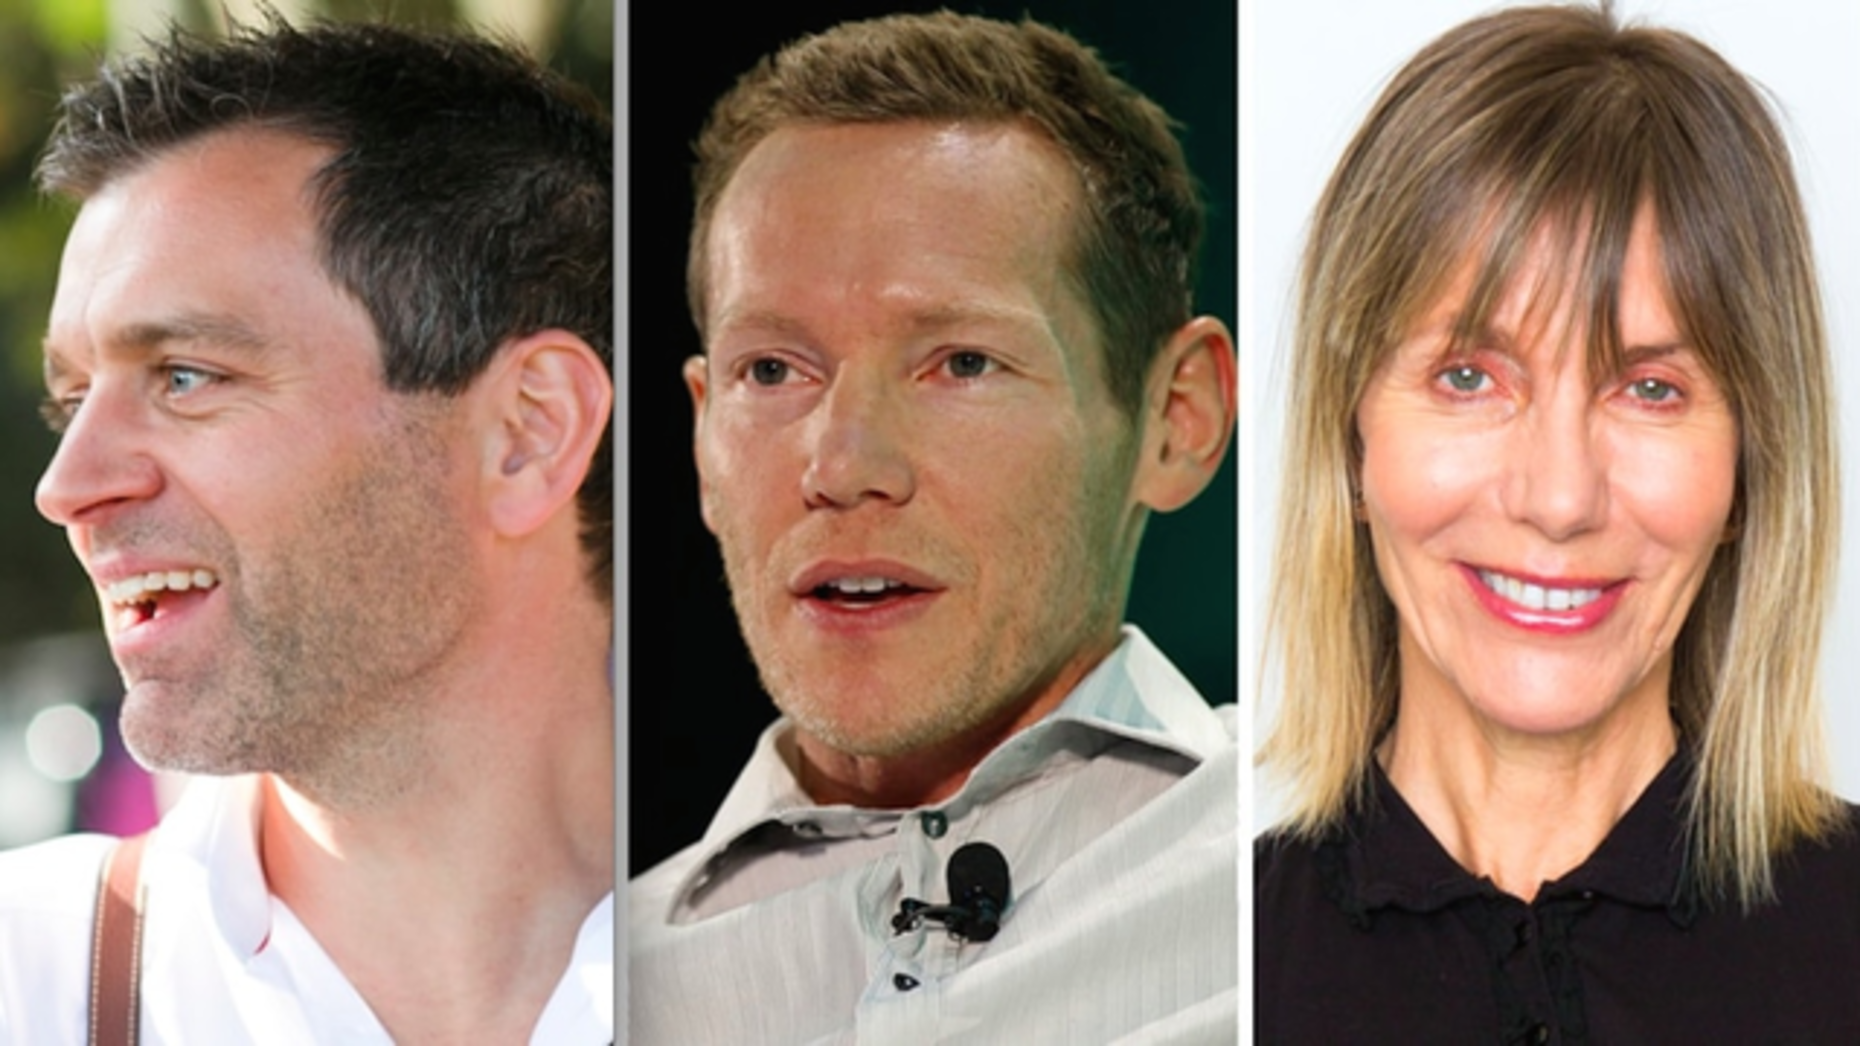 Daniel Graf, Jeff Holden and Liane Hornsey.  Photos by Mr. Graf, Bloomberg and Uber.